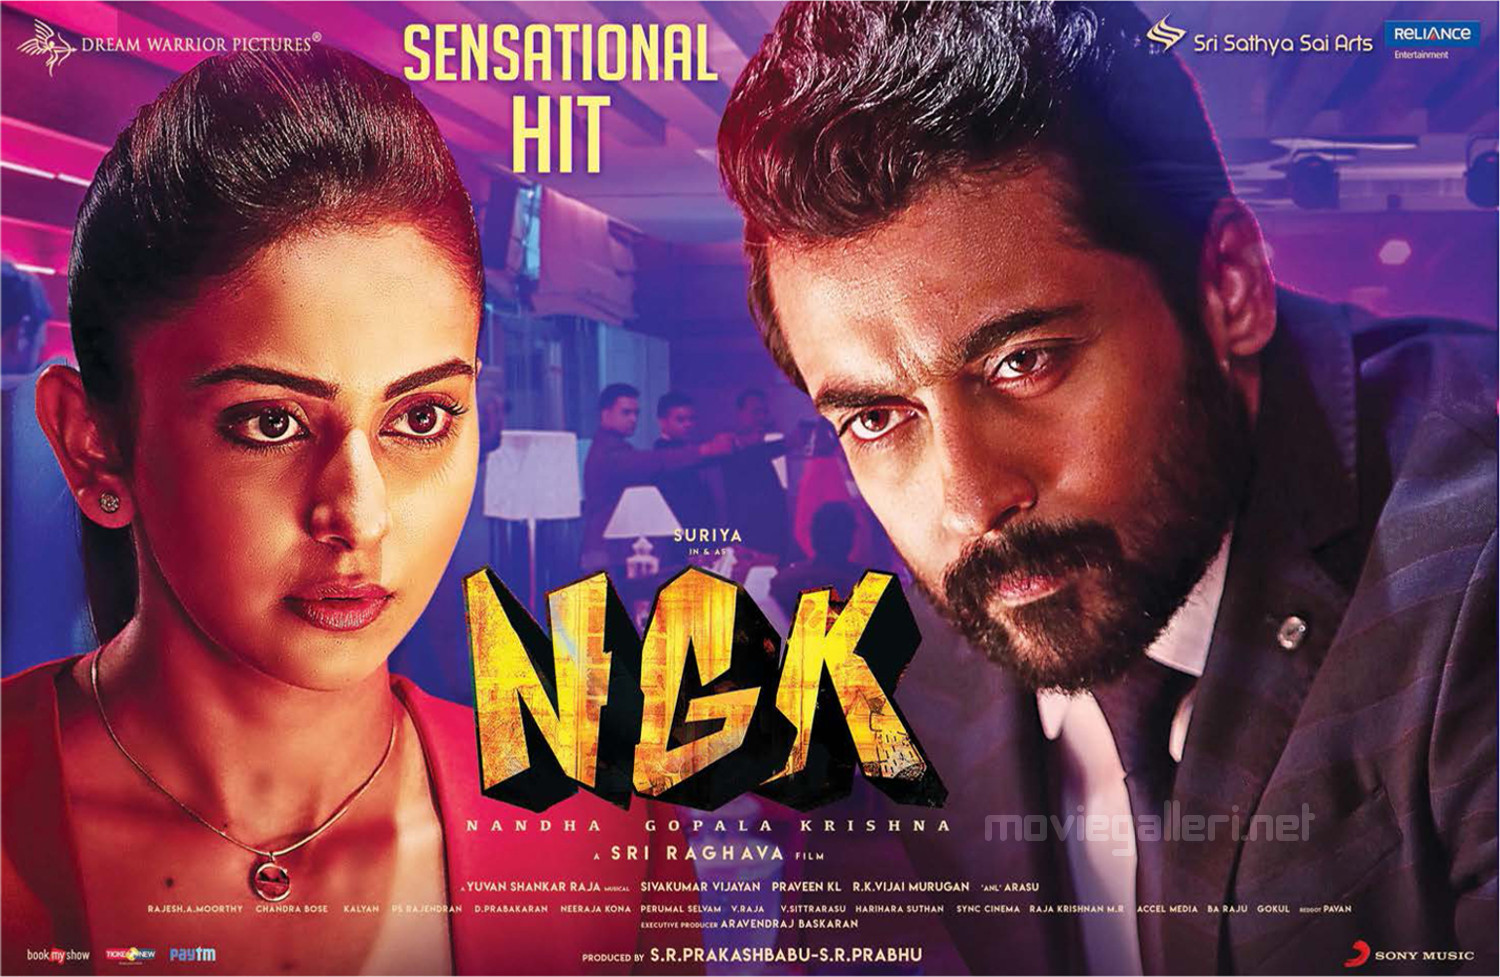 Rakul Preet Singh, Suriya in NGK Movie Sensational Hit Posters